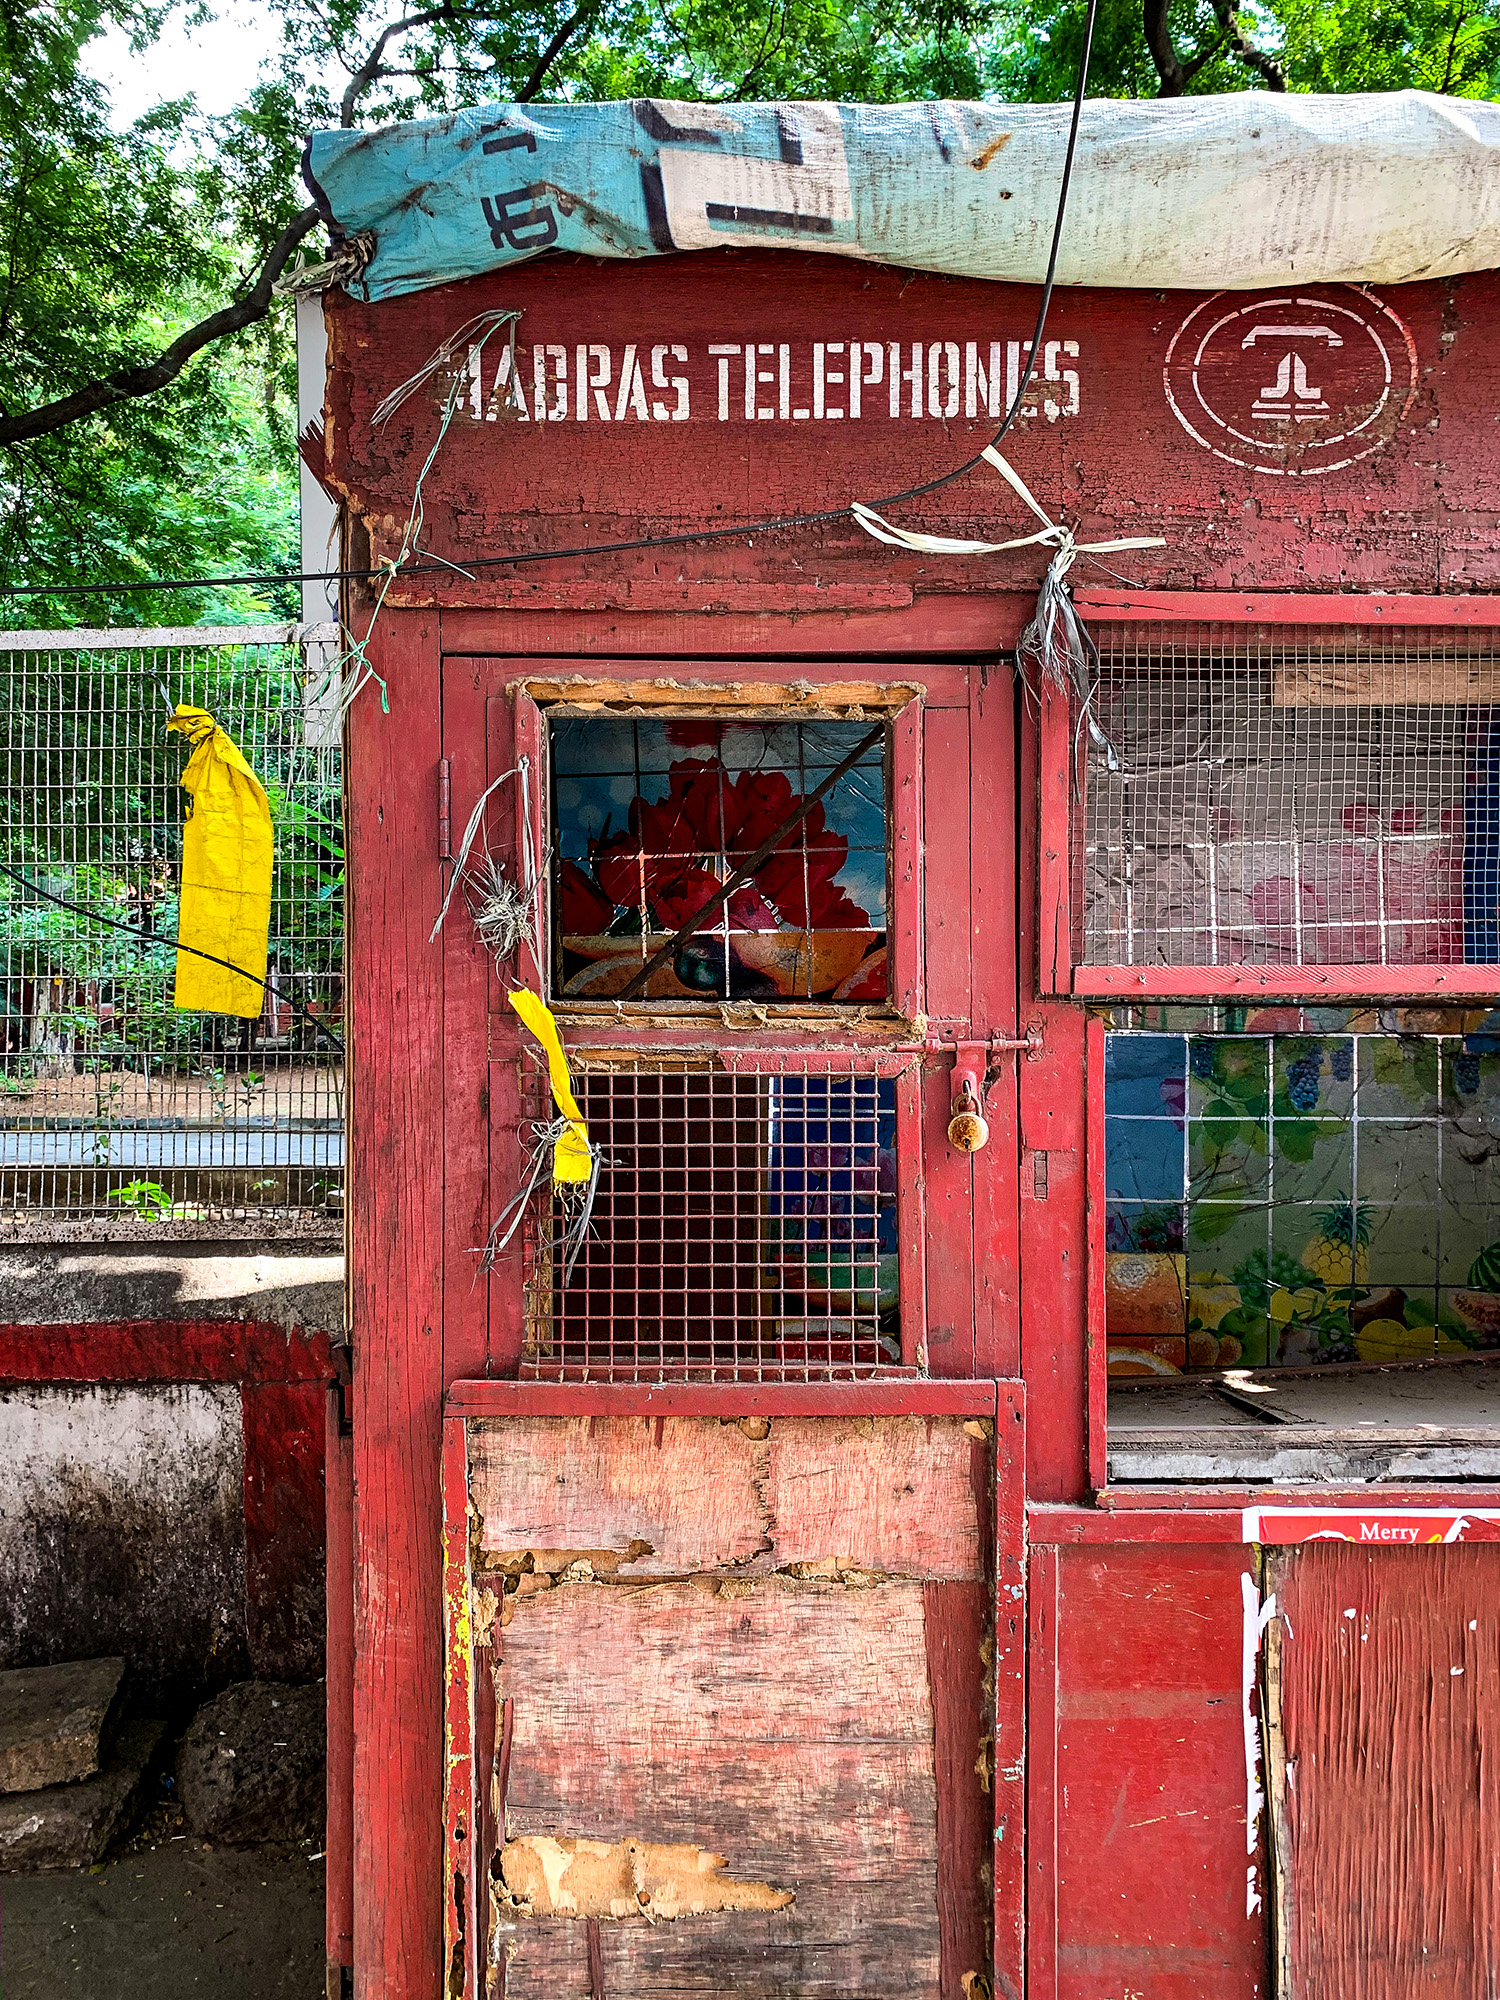 An abandoned telephone booth on the streets of Chennai.